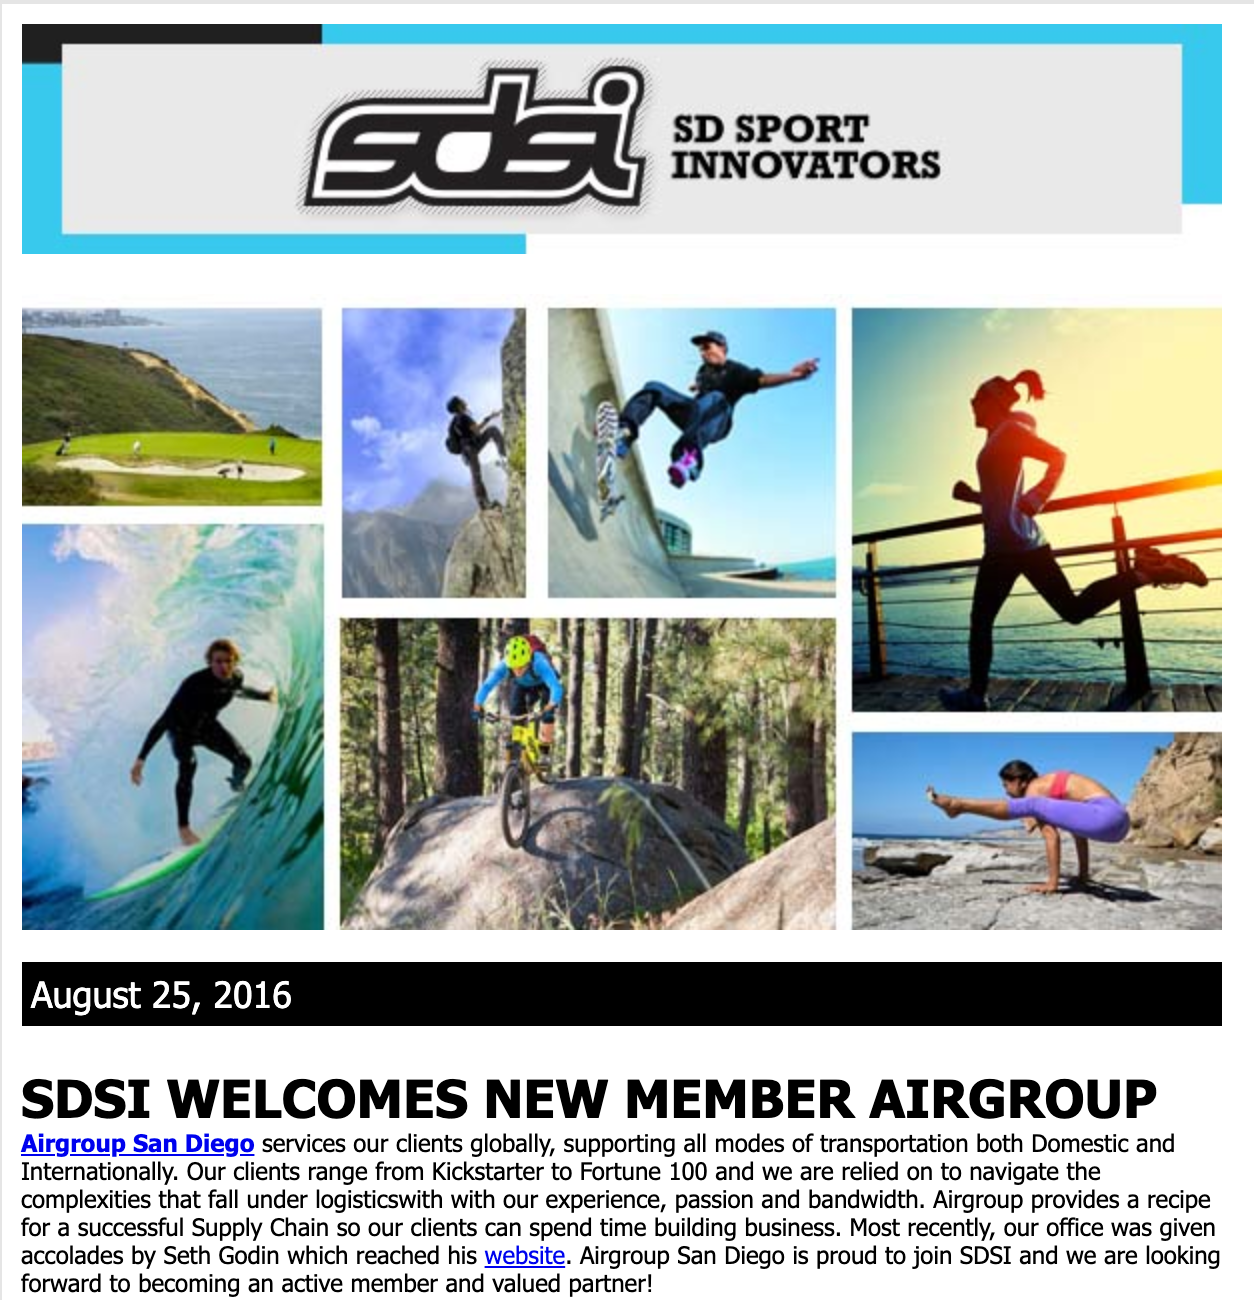 SAN DIEGO SPORTS INNOVATORS, AUGUST 25, 2016: SDSI WELCOMES NEW MEMBER AIRGROUP